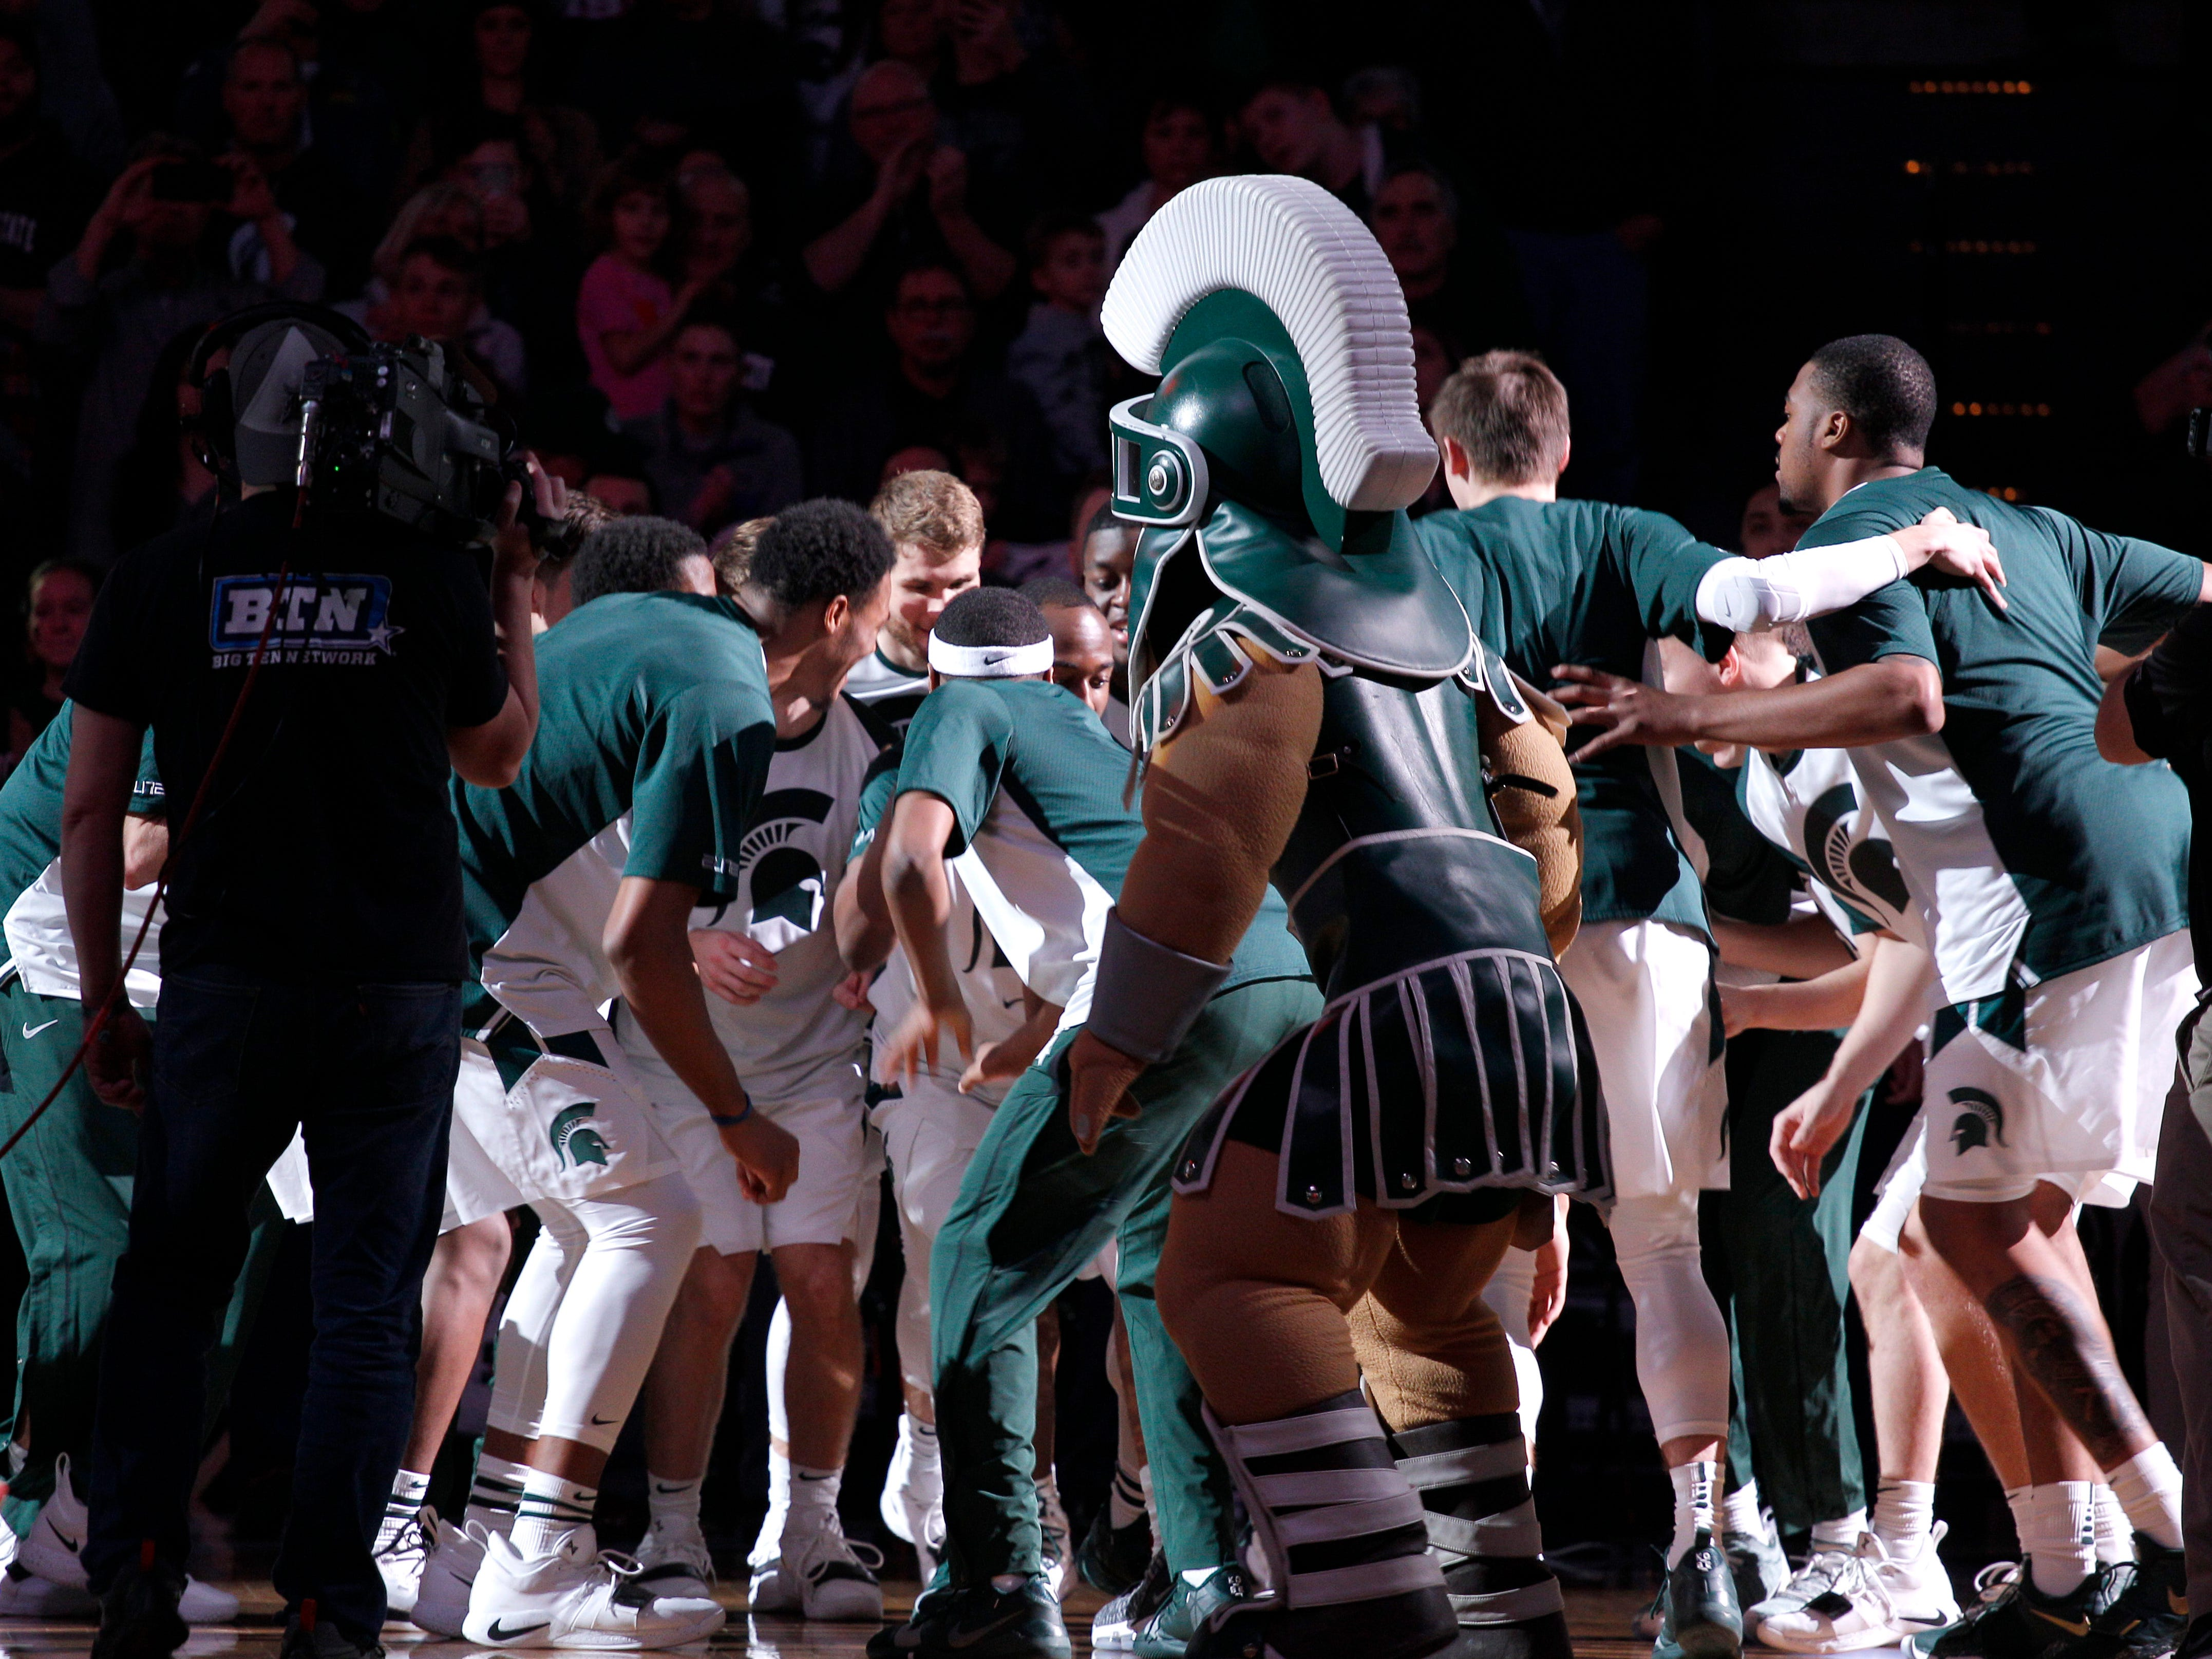 Michigan State players get fired up during introductions before their game against Northern Illinois, Saturday, Dec. 29, 2018, in East Lansing, Mich.